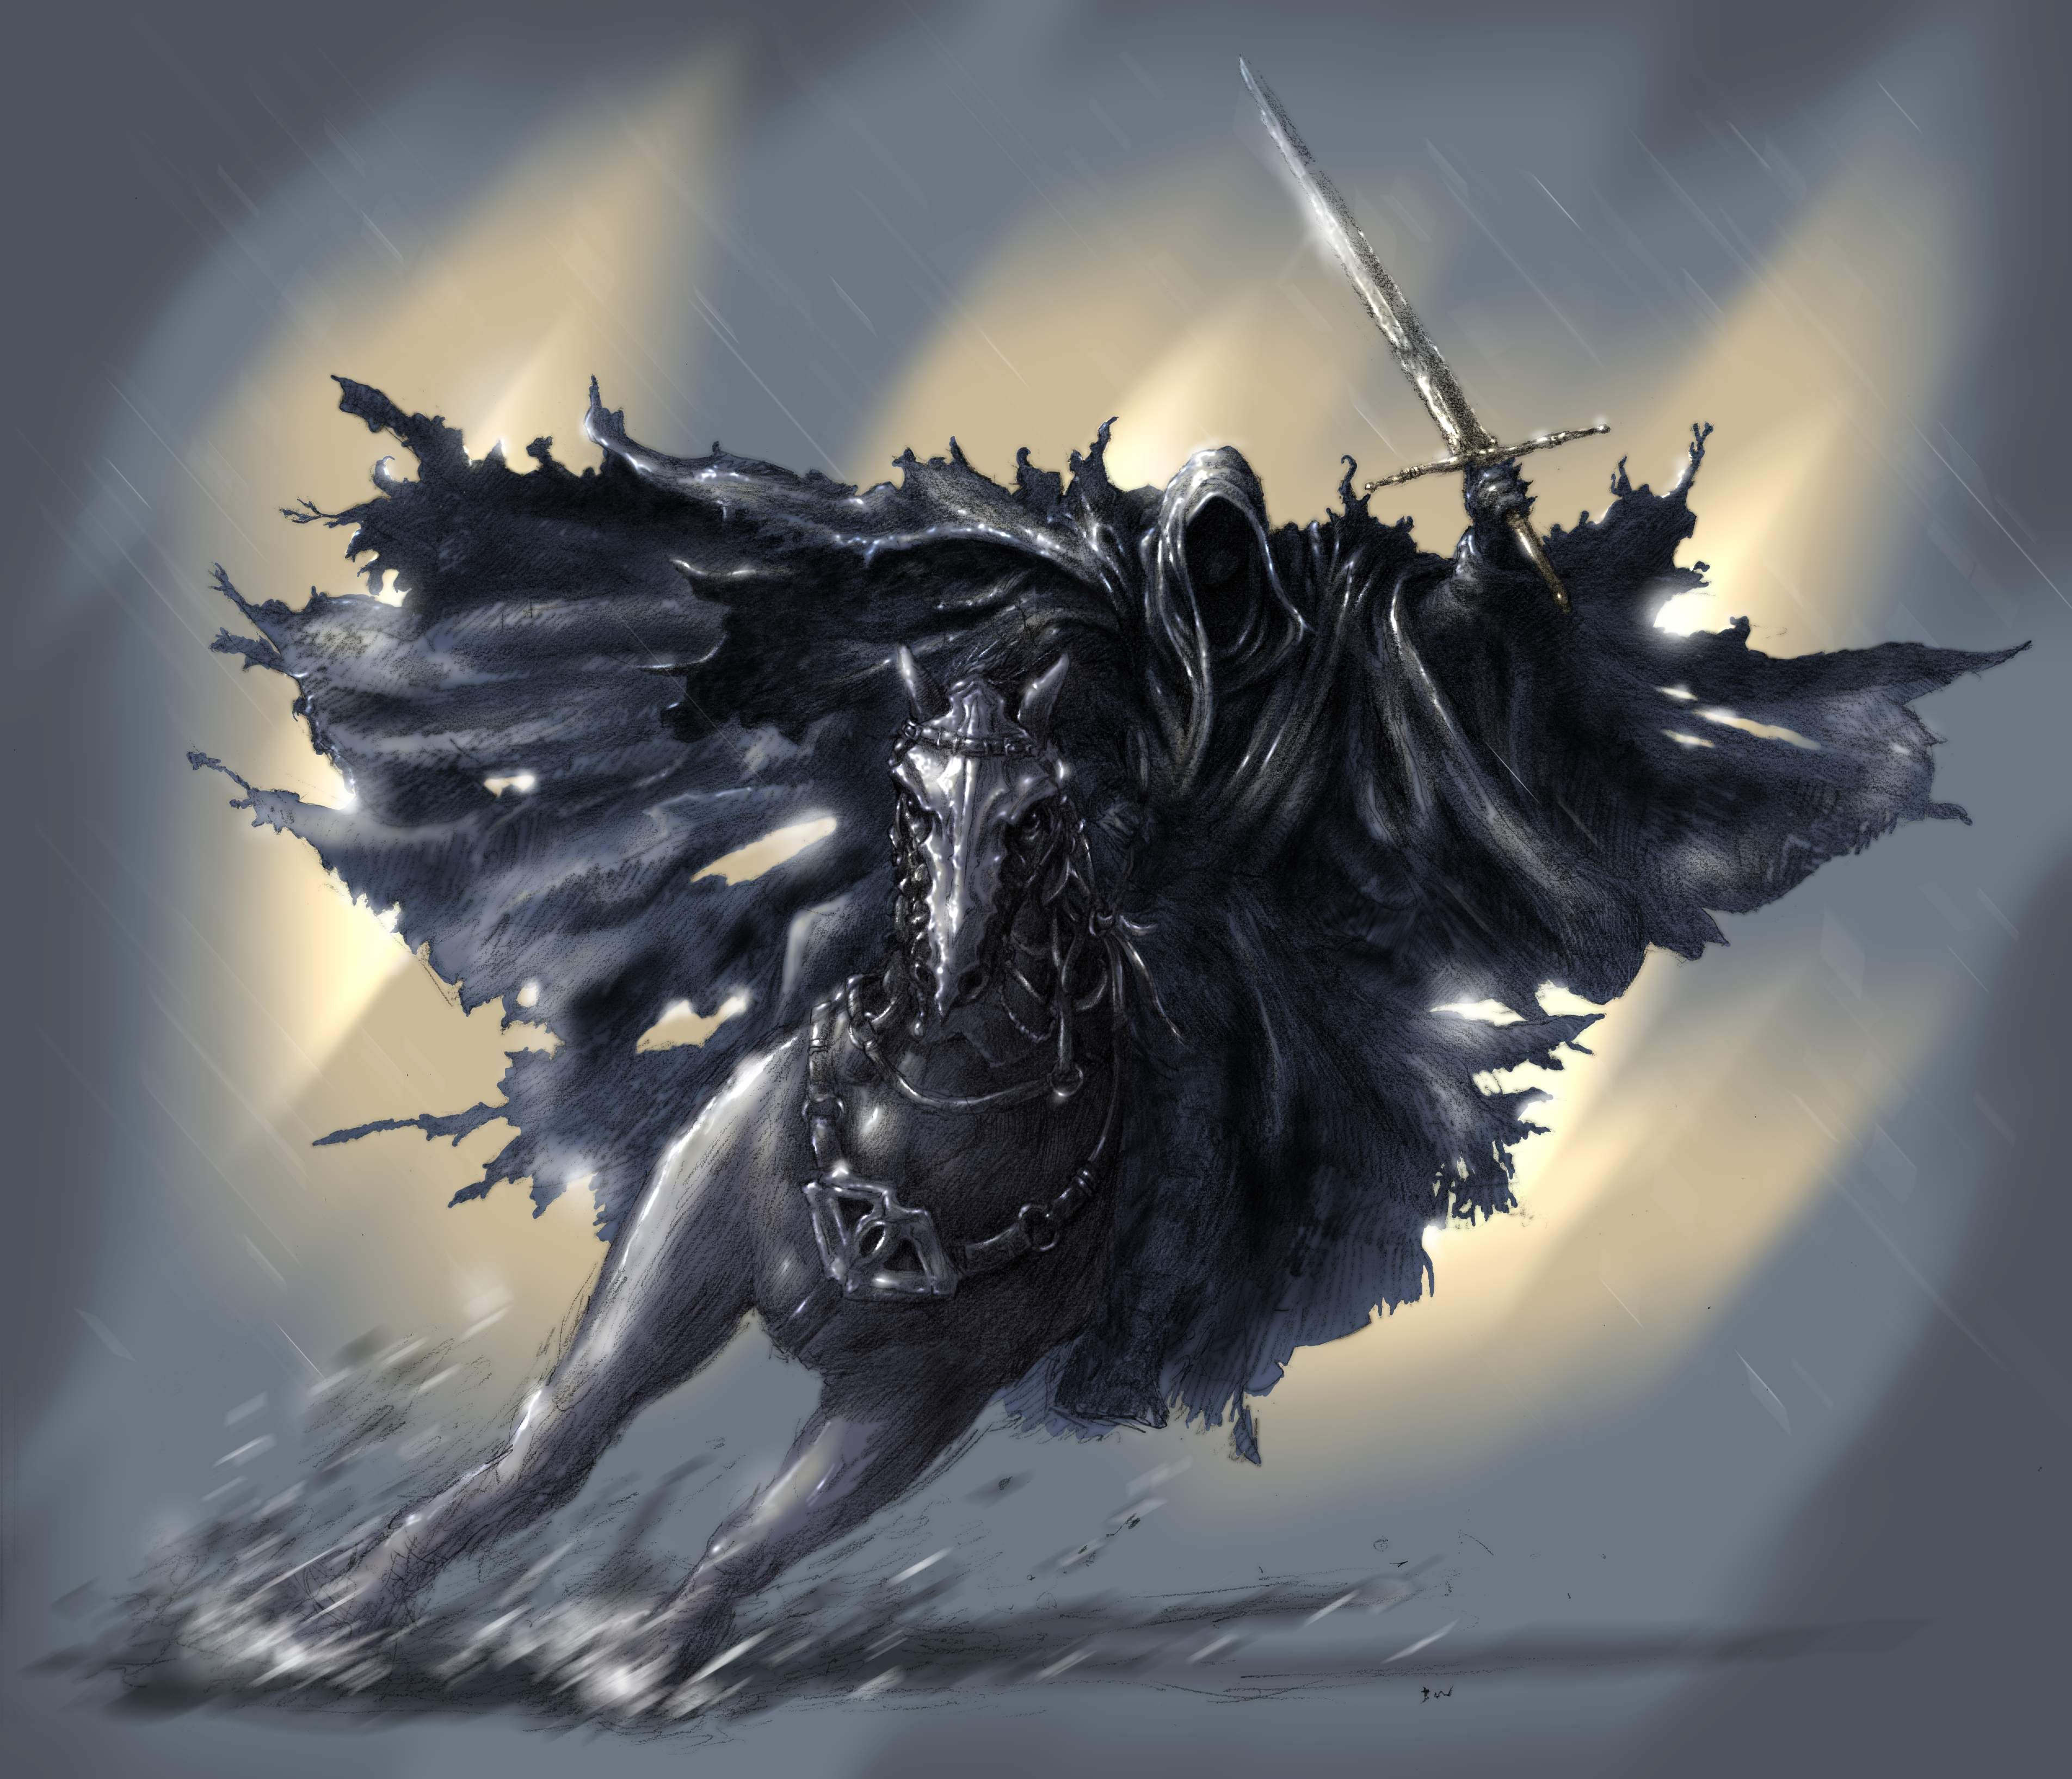 The Lord Of The Rings The Witch King Nazgul Ringwraith Wallpaper